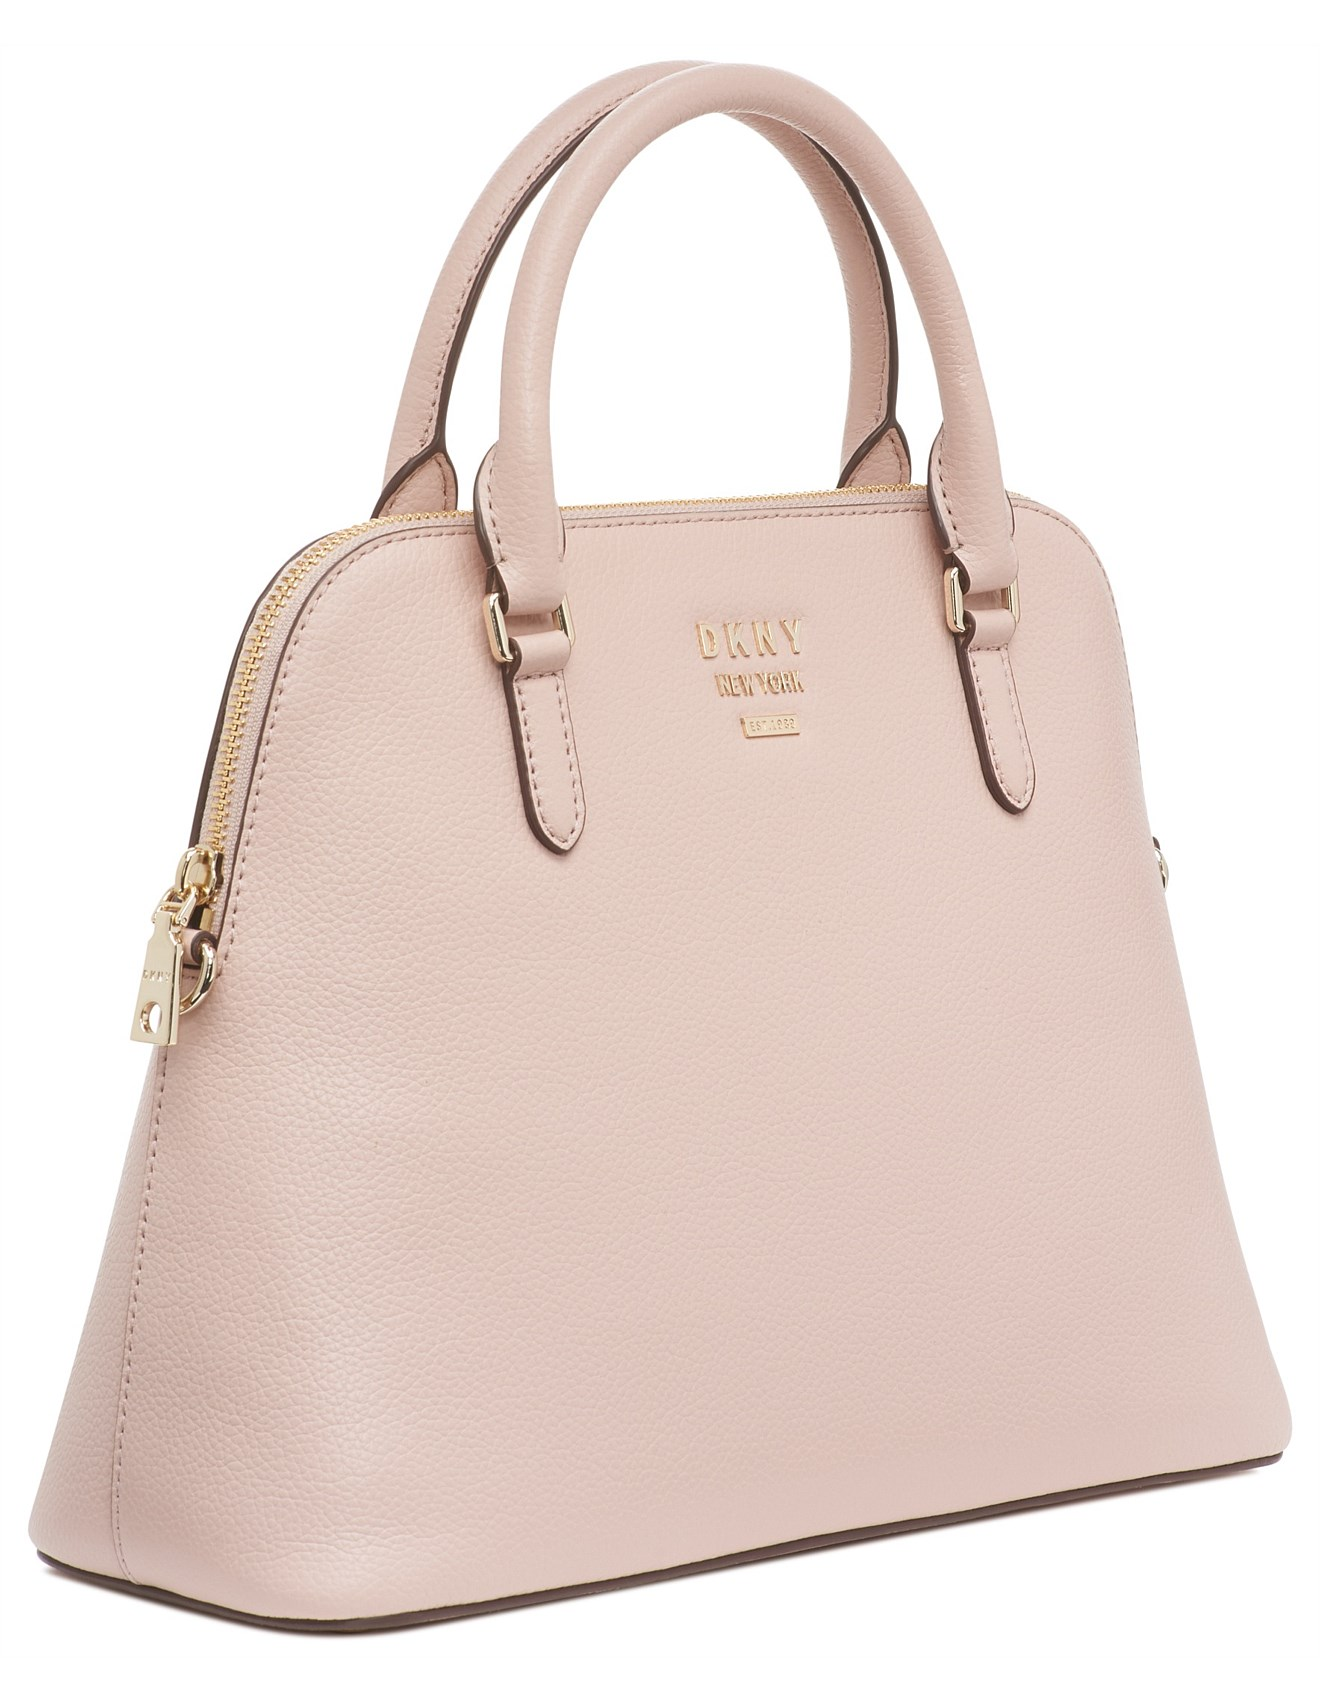 Bags - WHITNEY LARGE DOME SATCHEL BAG